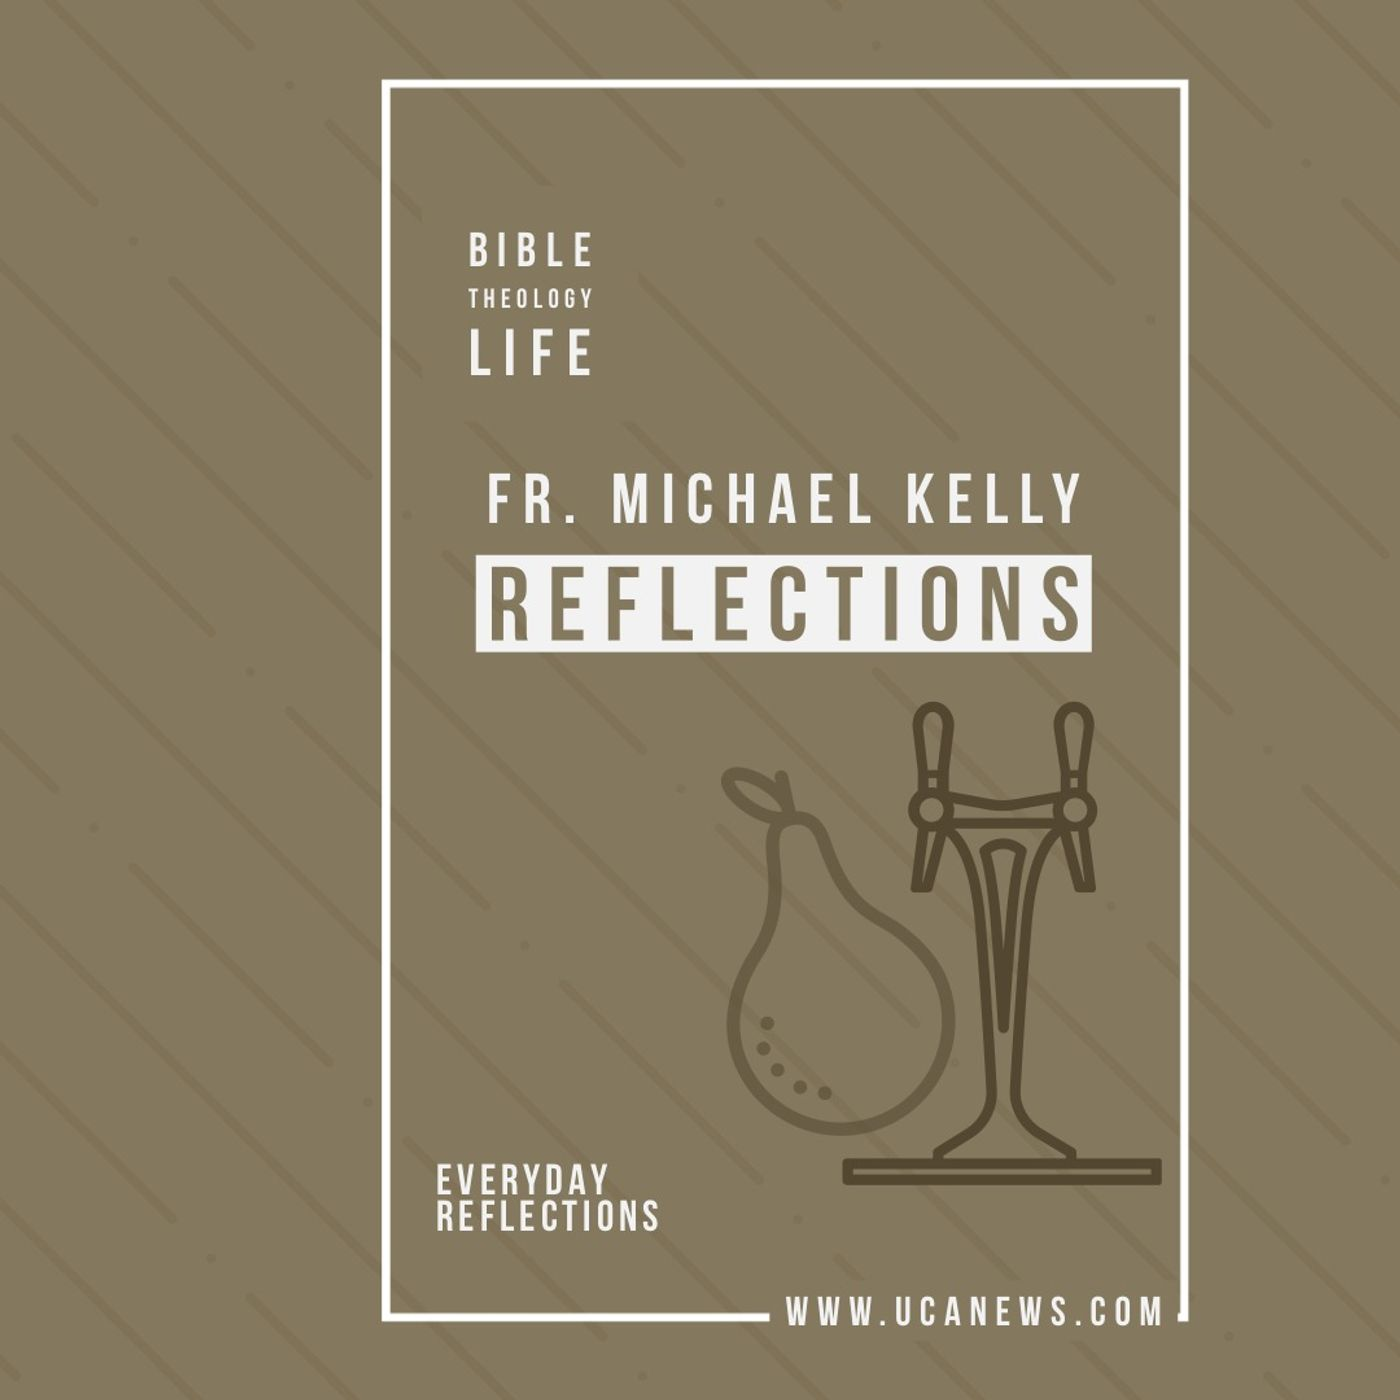 Reflections with Fr. Michael Kelly - Thursday 16 Sept, 2021